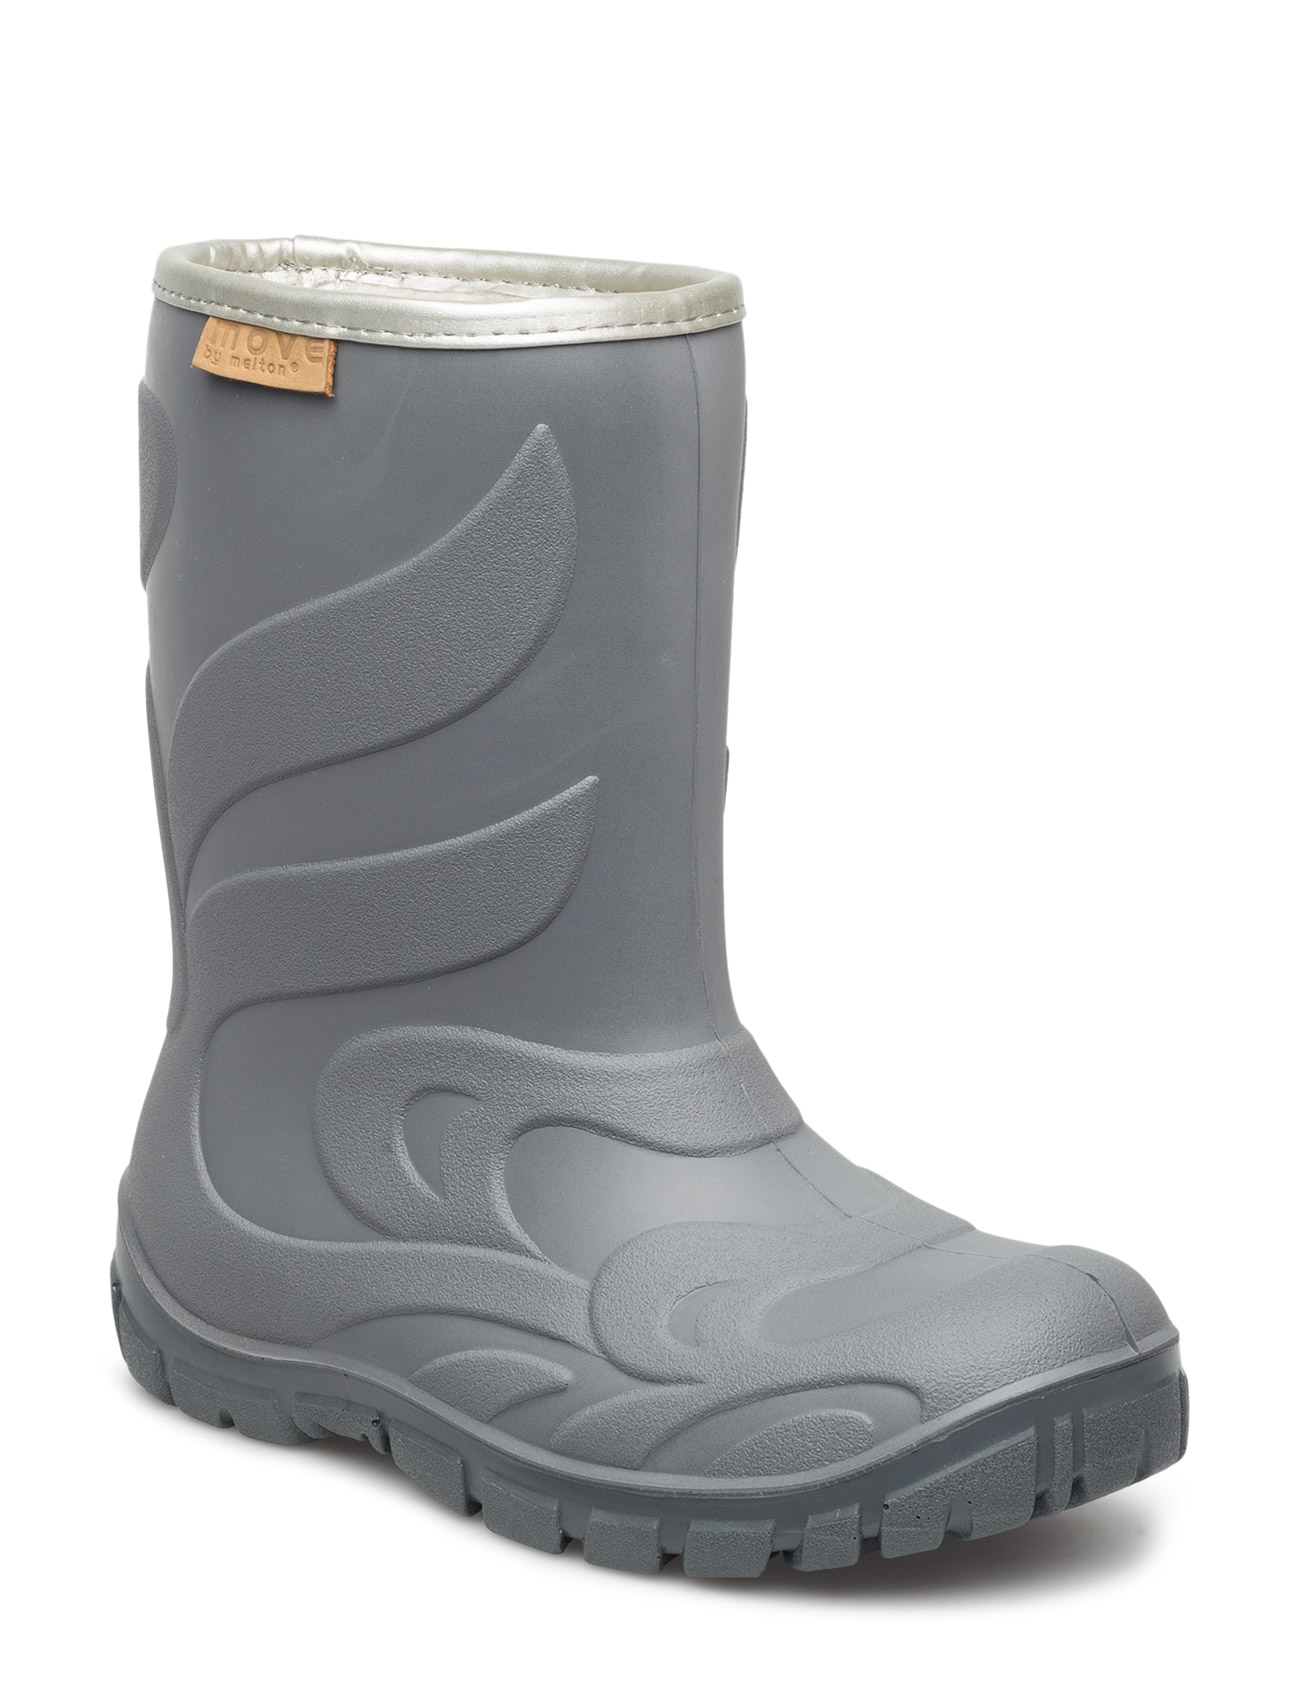 Move by Melton OB Thermo boot warmlined